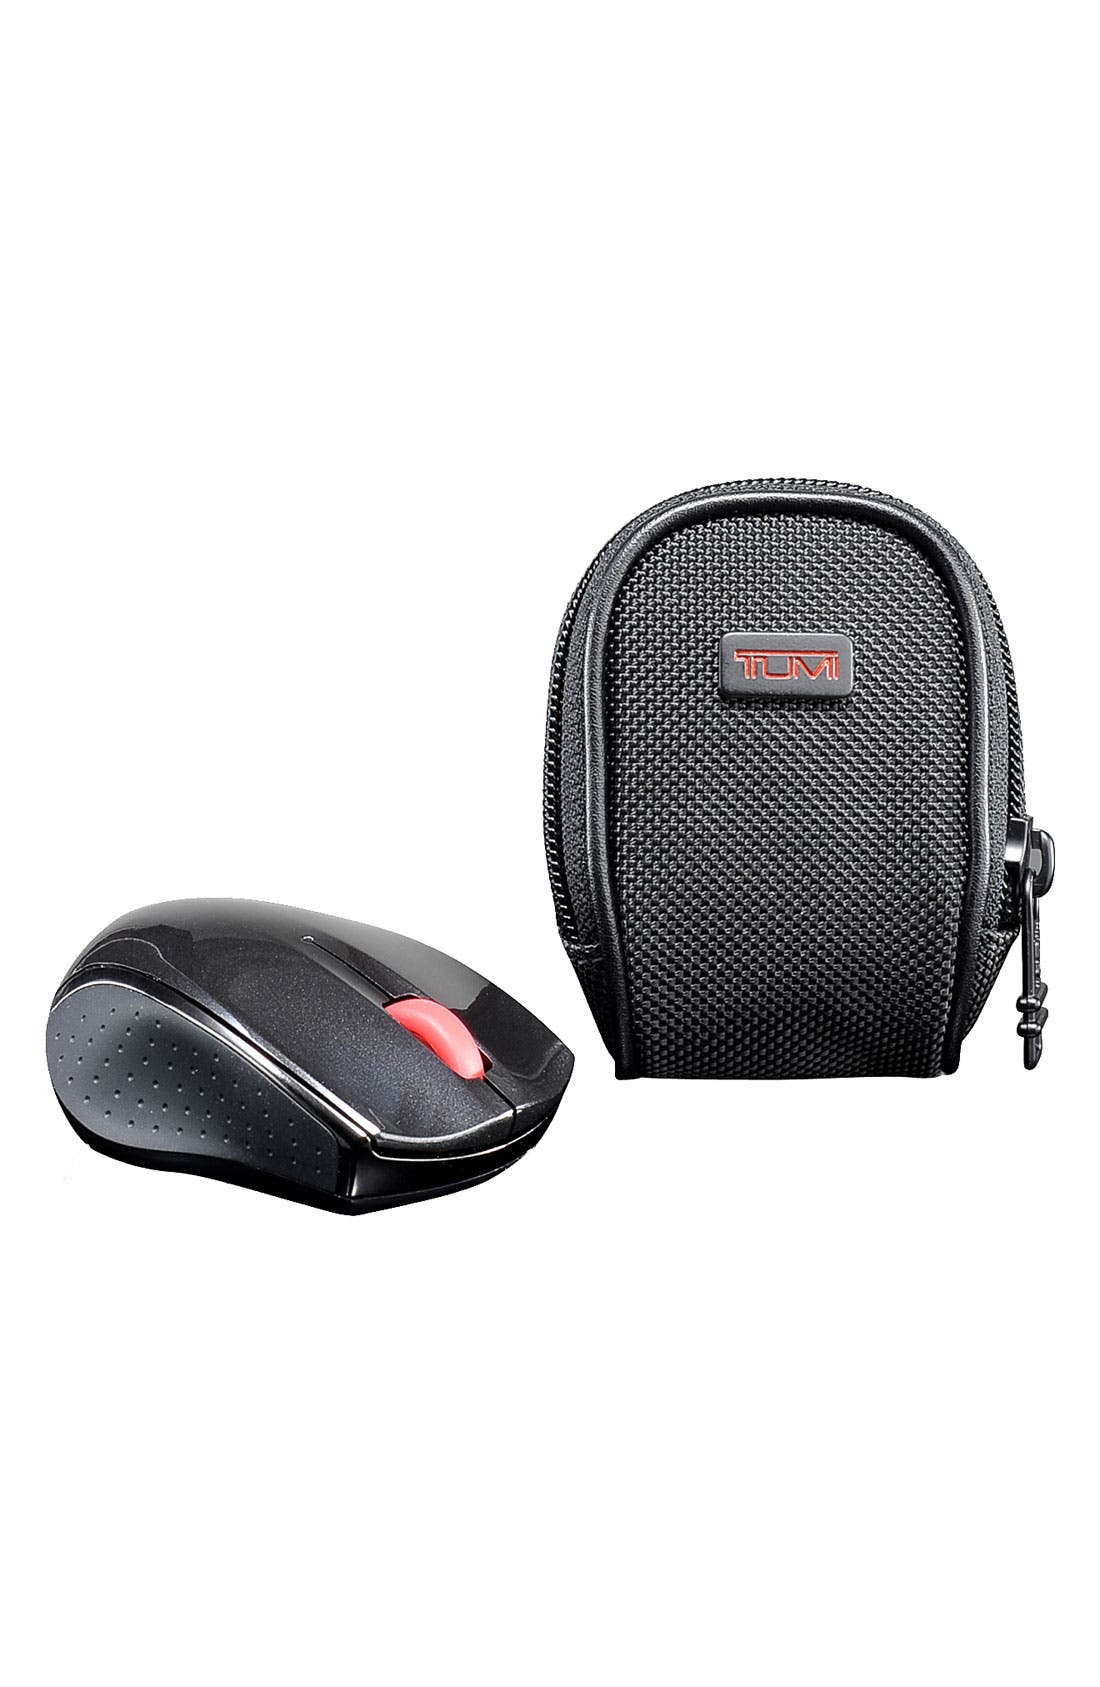 Main Image - Tumi 'Mini' Wireless Travel Mouse